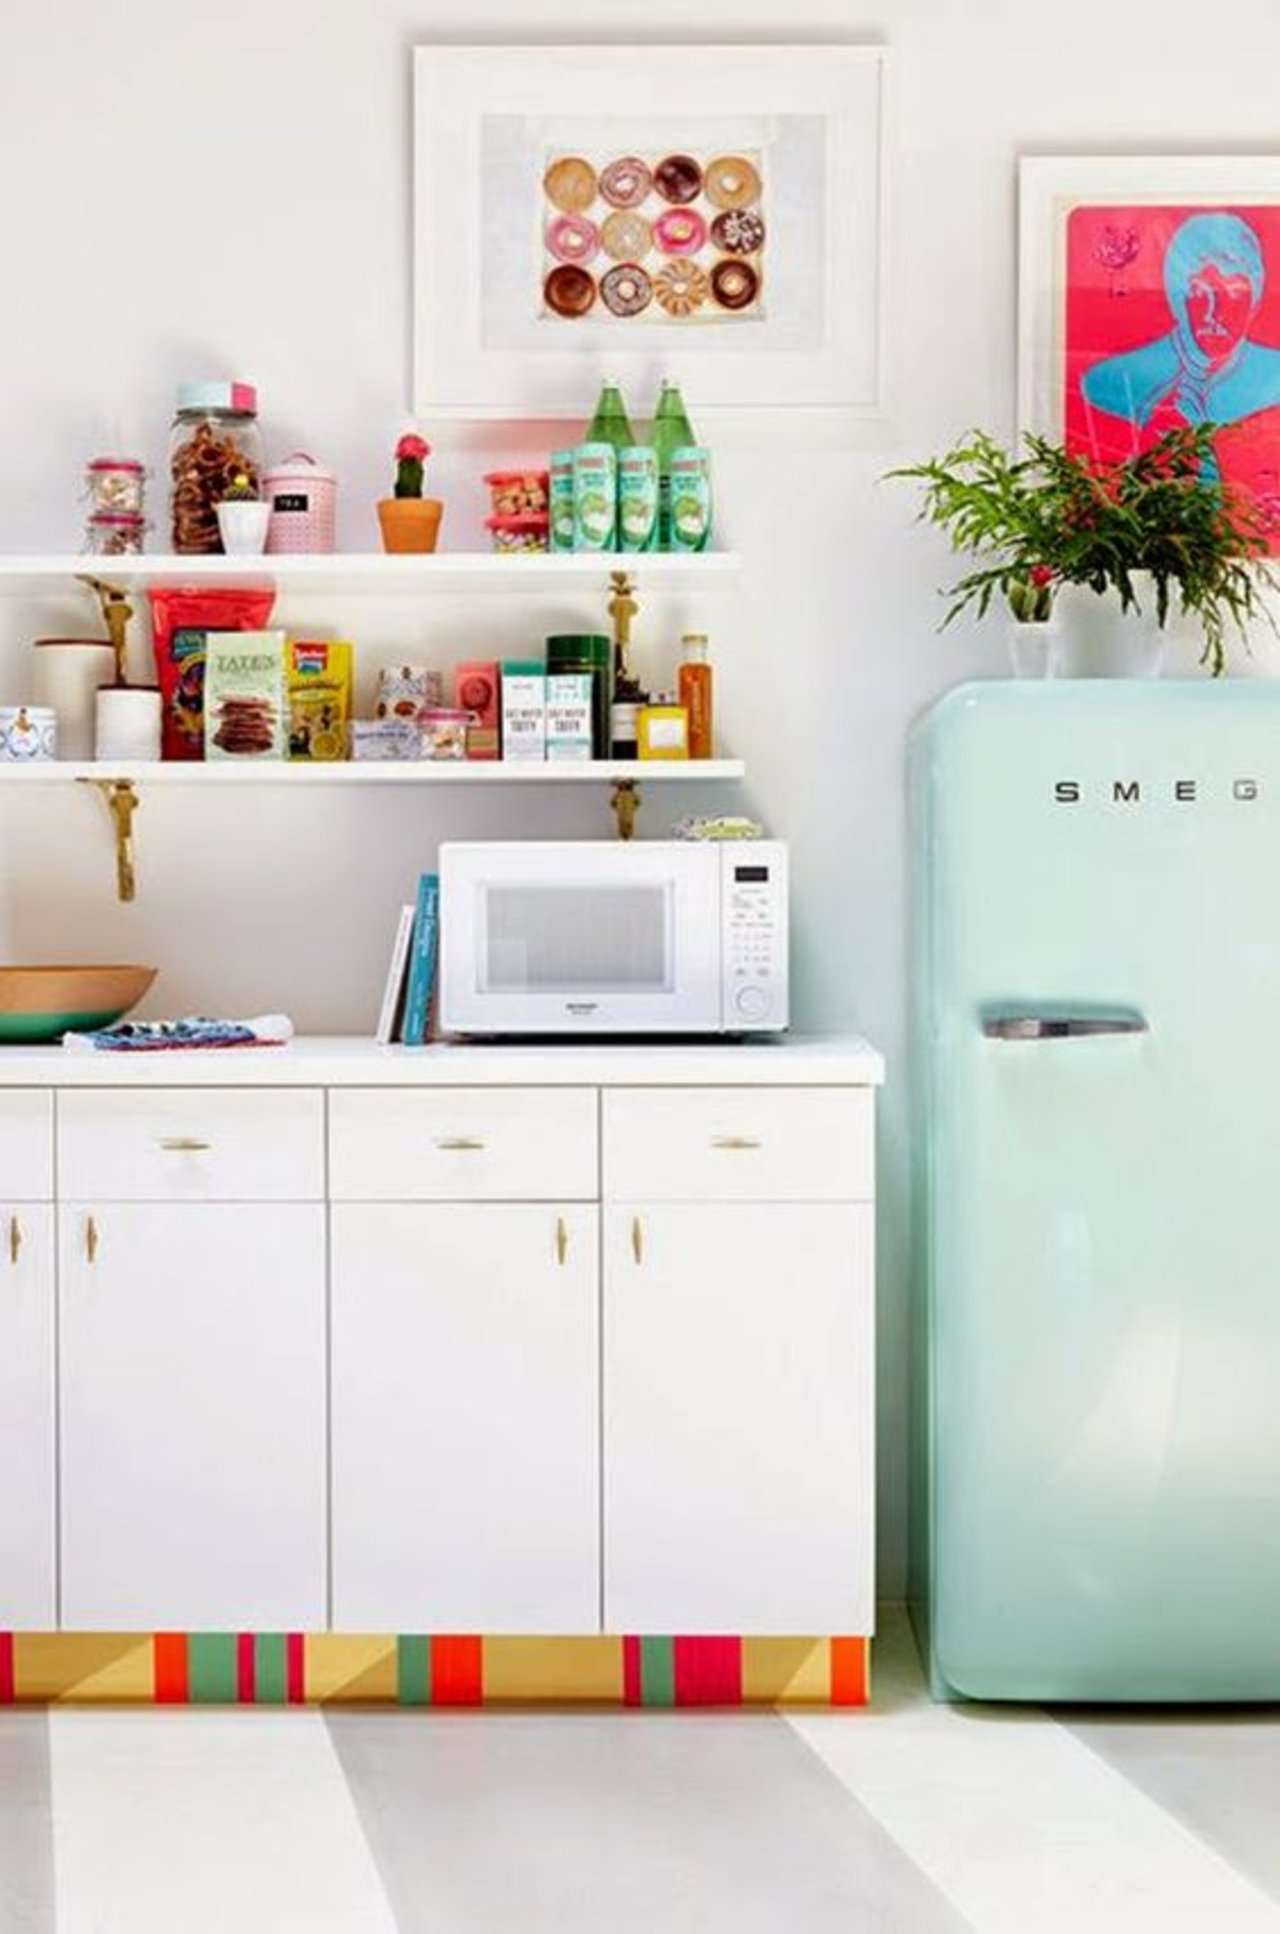 8 Rooms That Prove Smeg Fridges are the Key to a Fabulously Retro ...